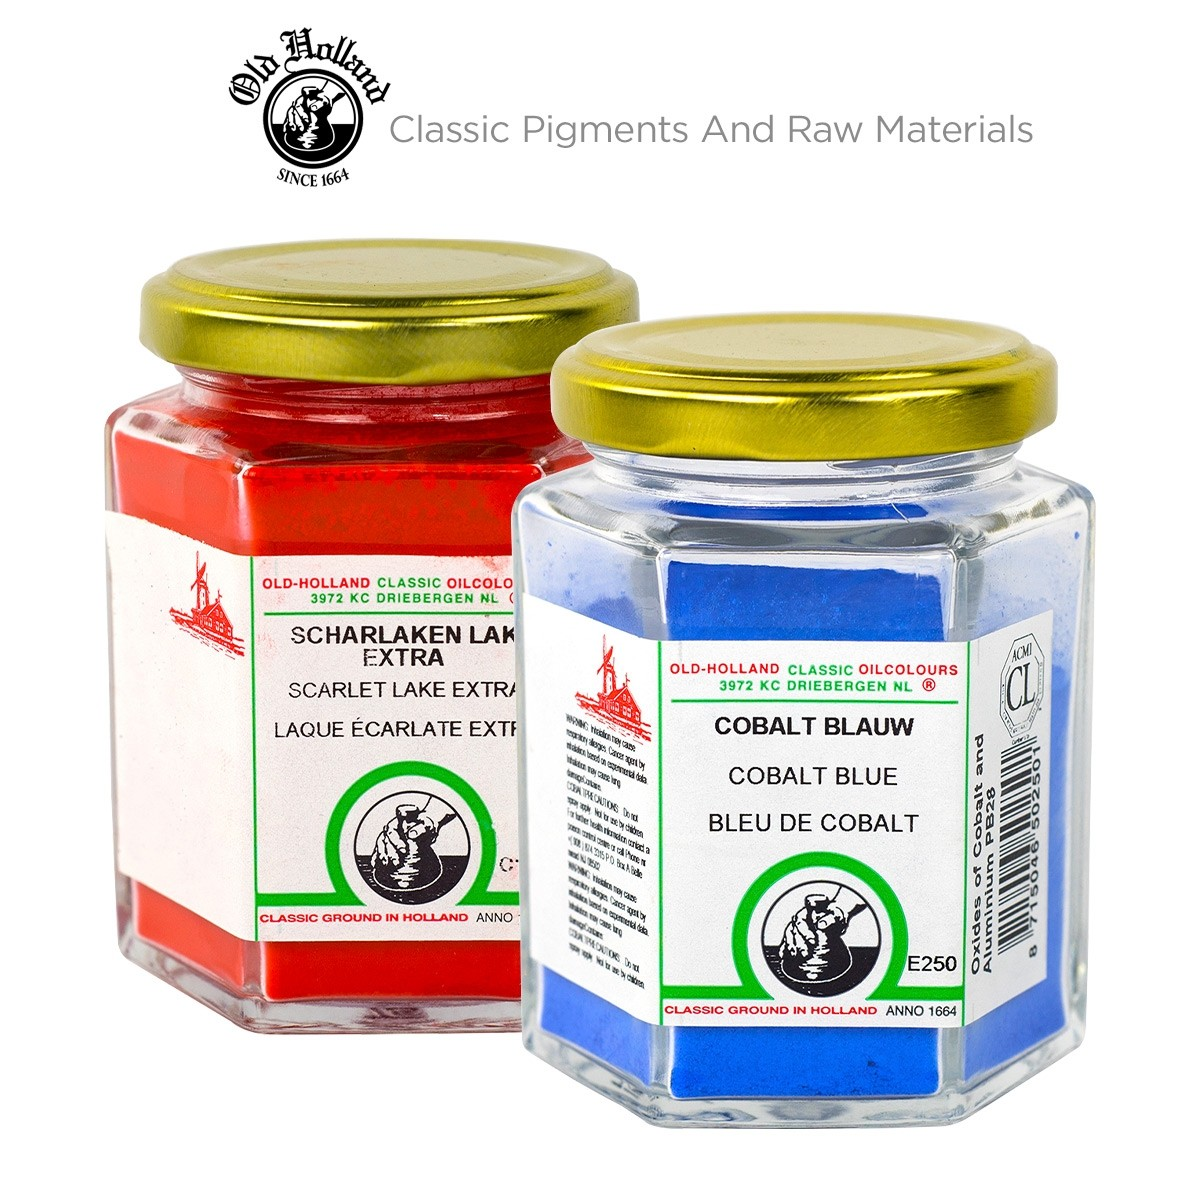 Old Holland Pigments, Make your own paint